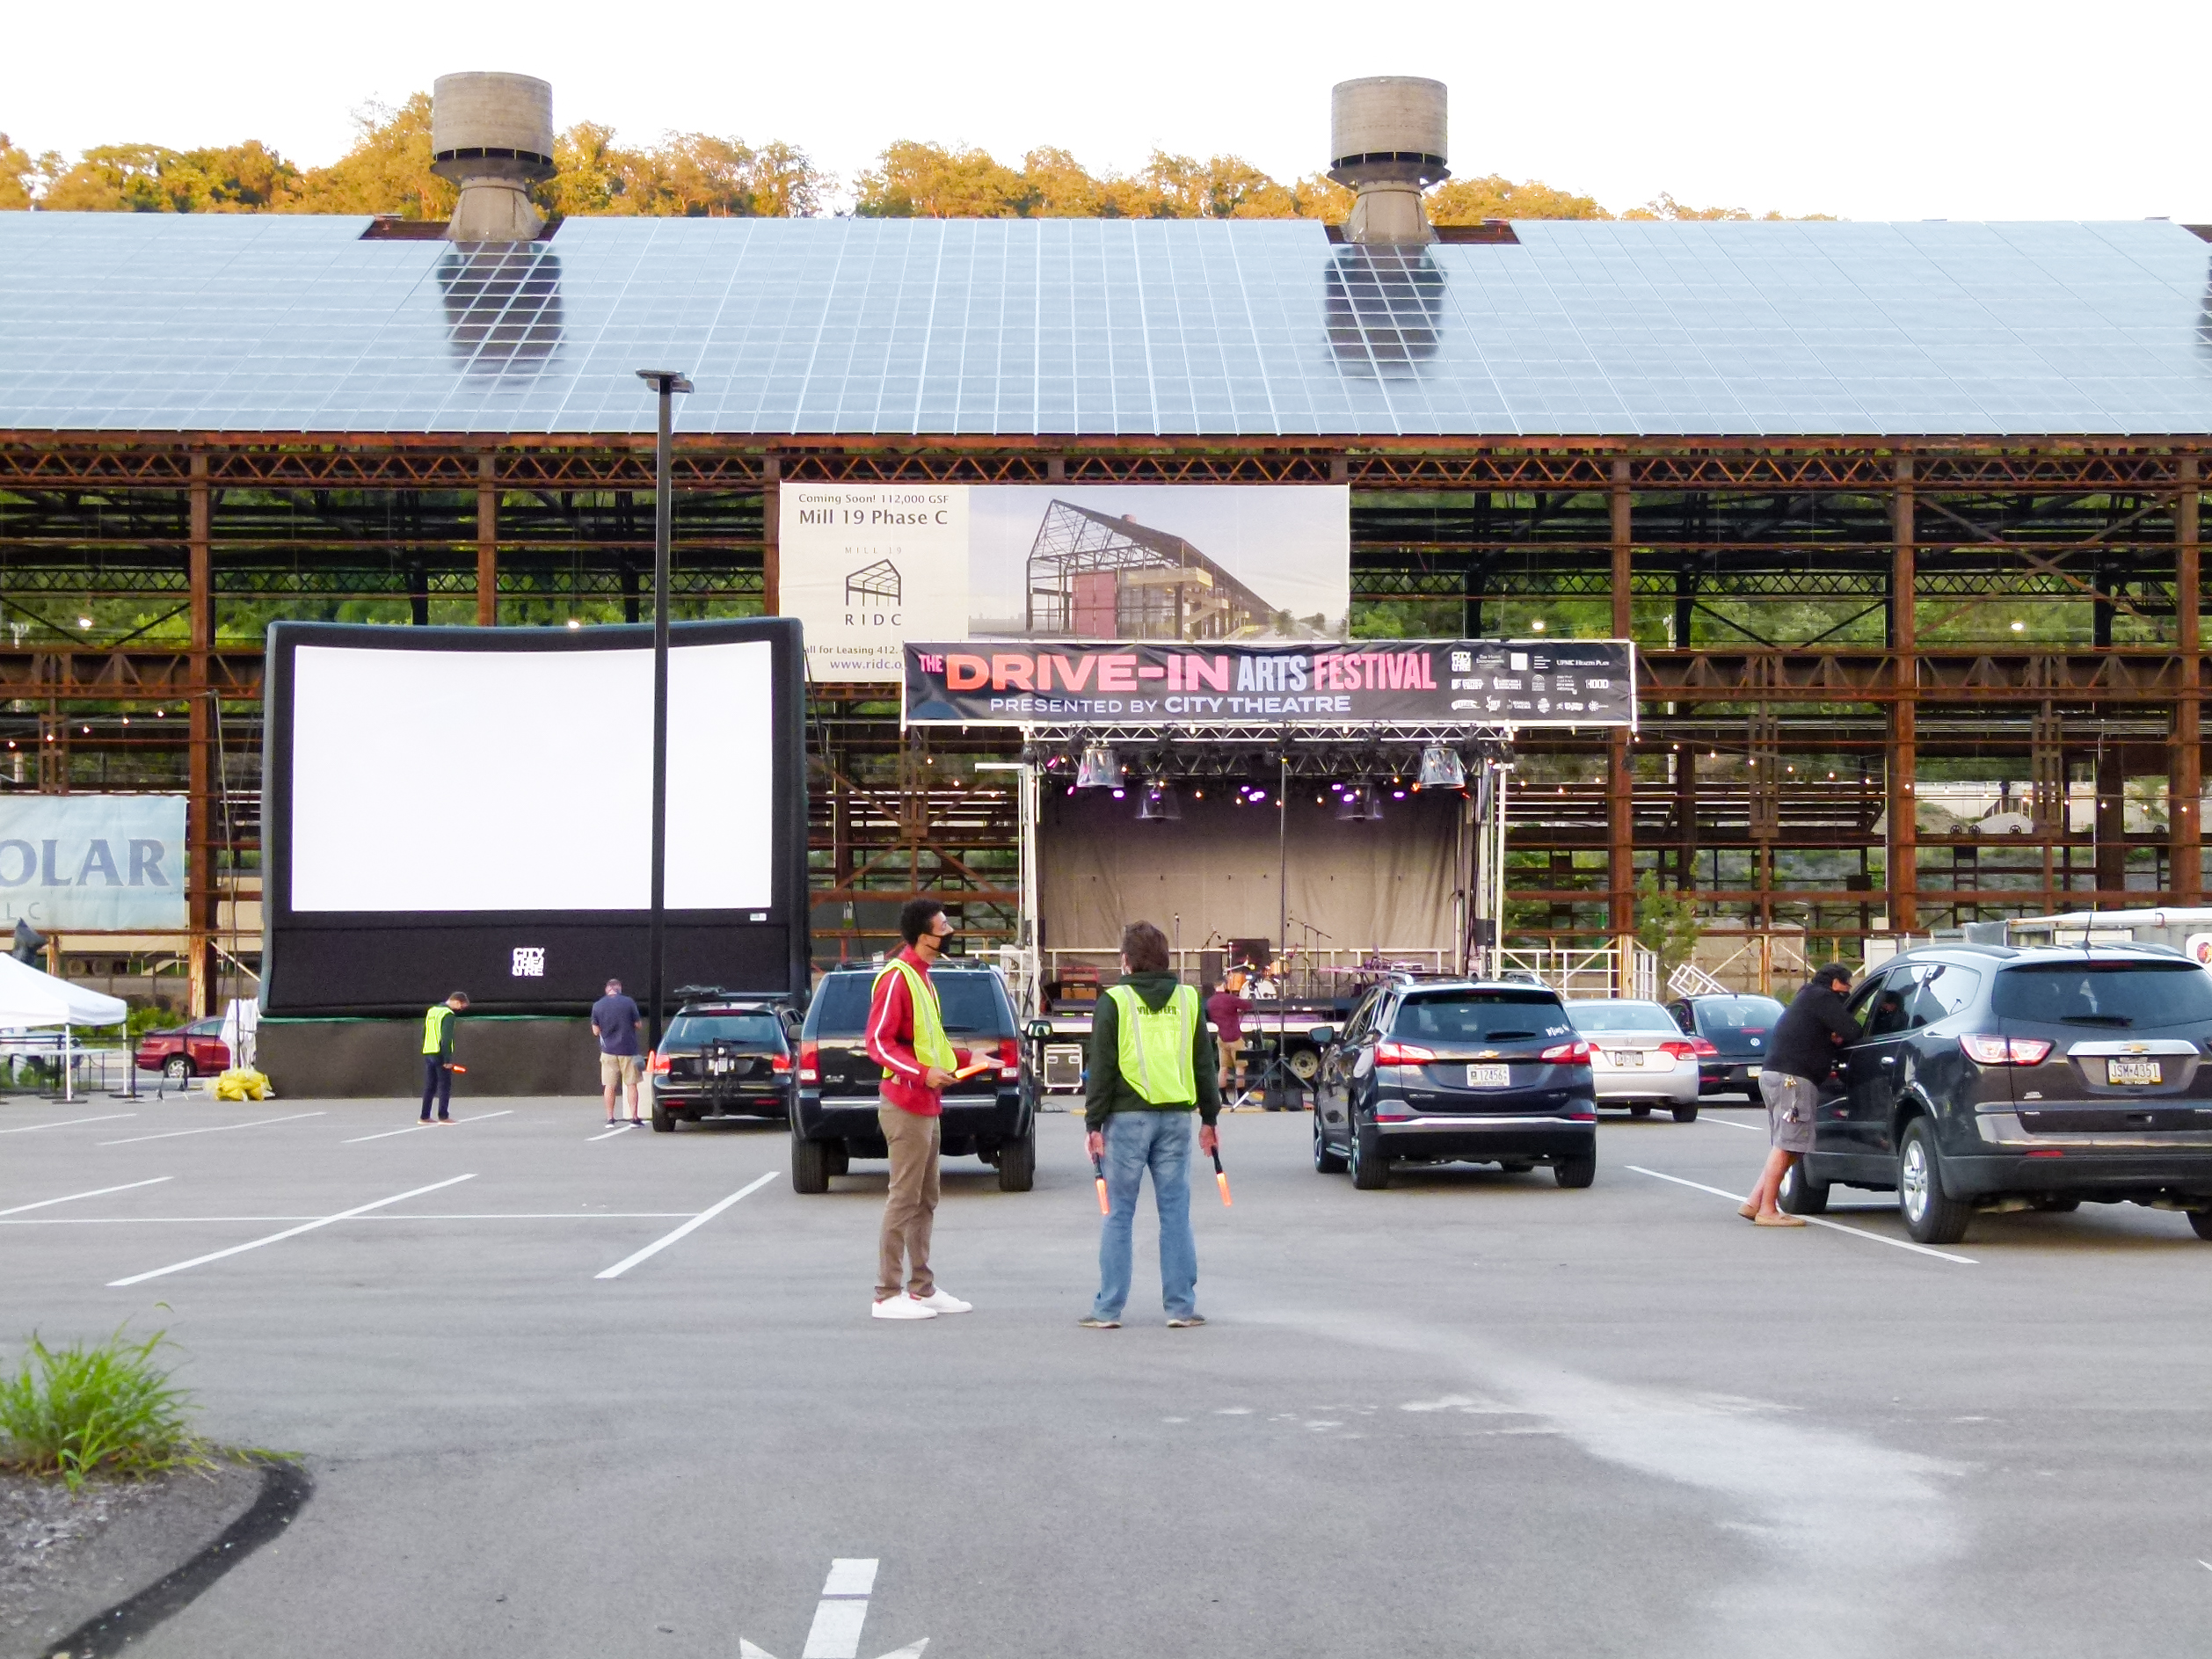 The Drive-in Arts Festival set against the backdrop of Mill 19 just as cars are starting to enter.